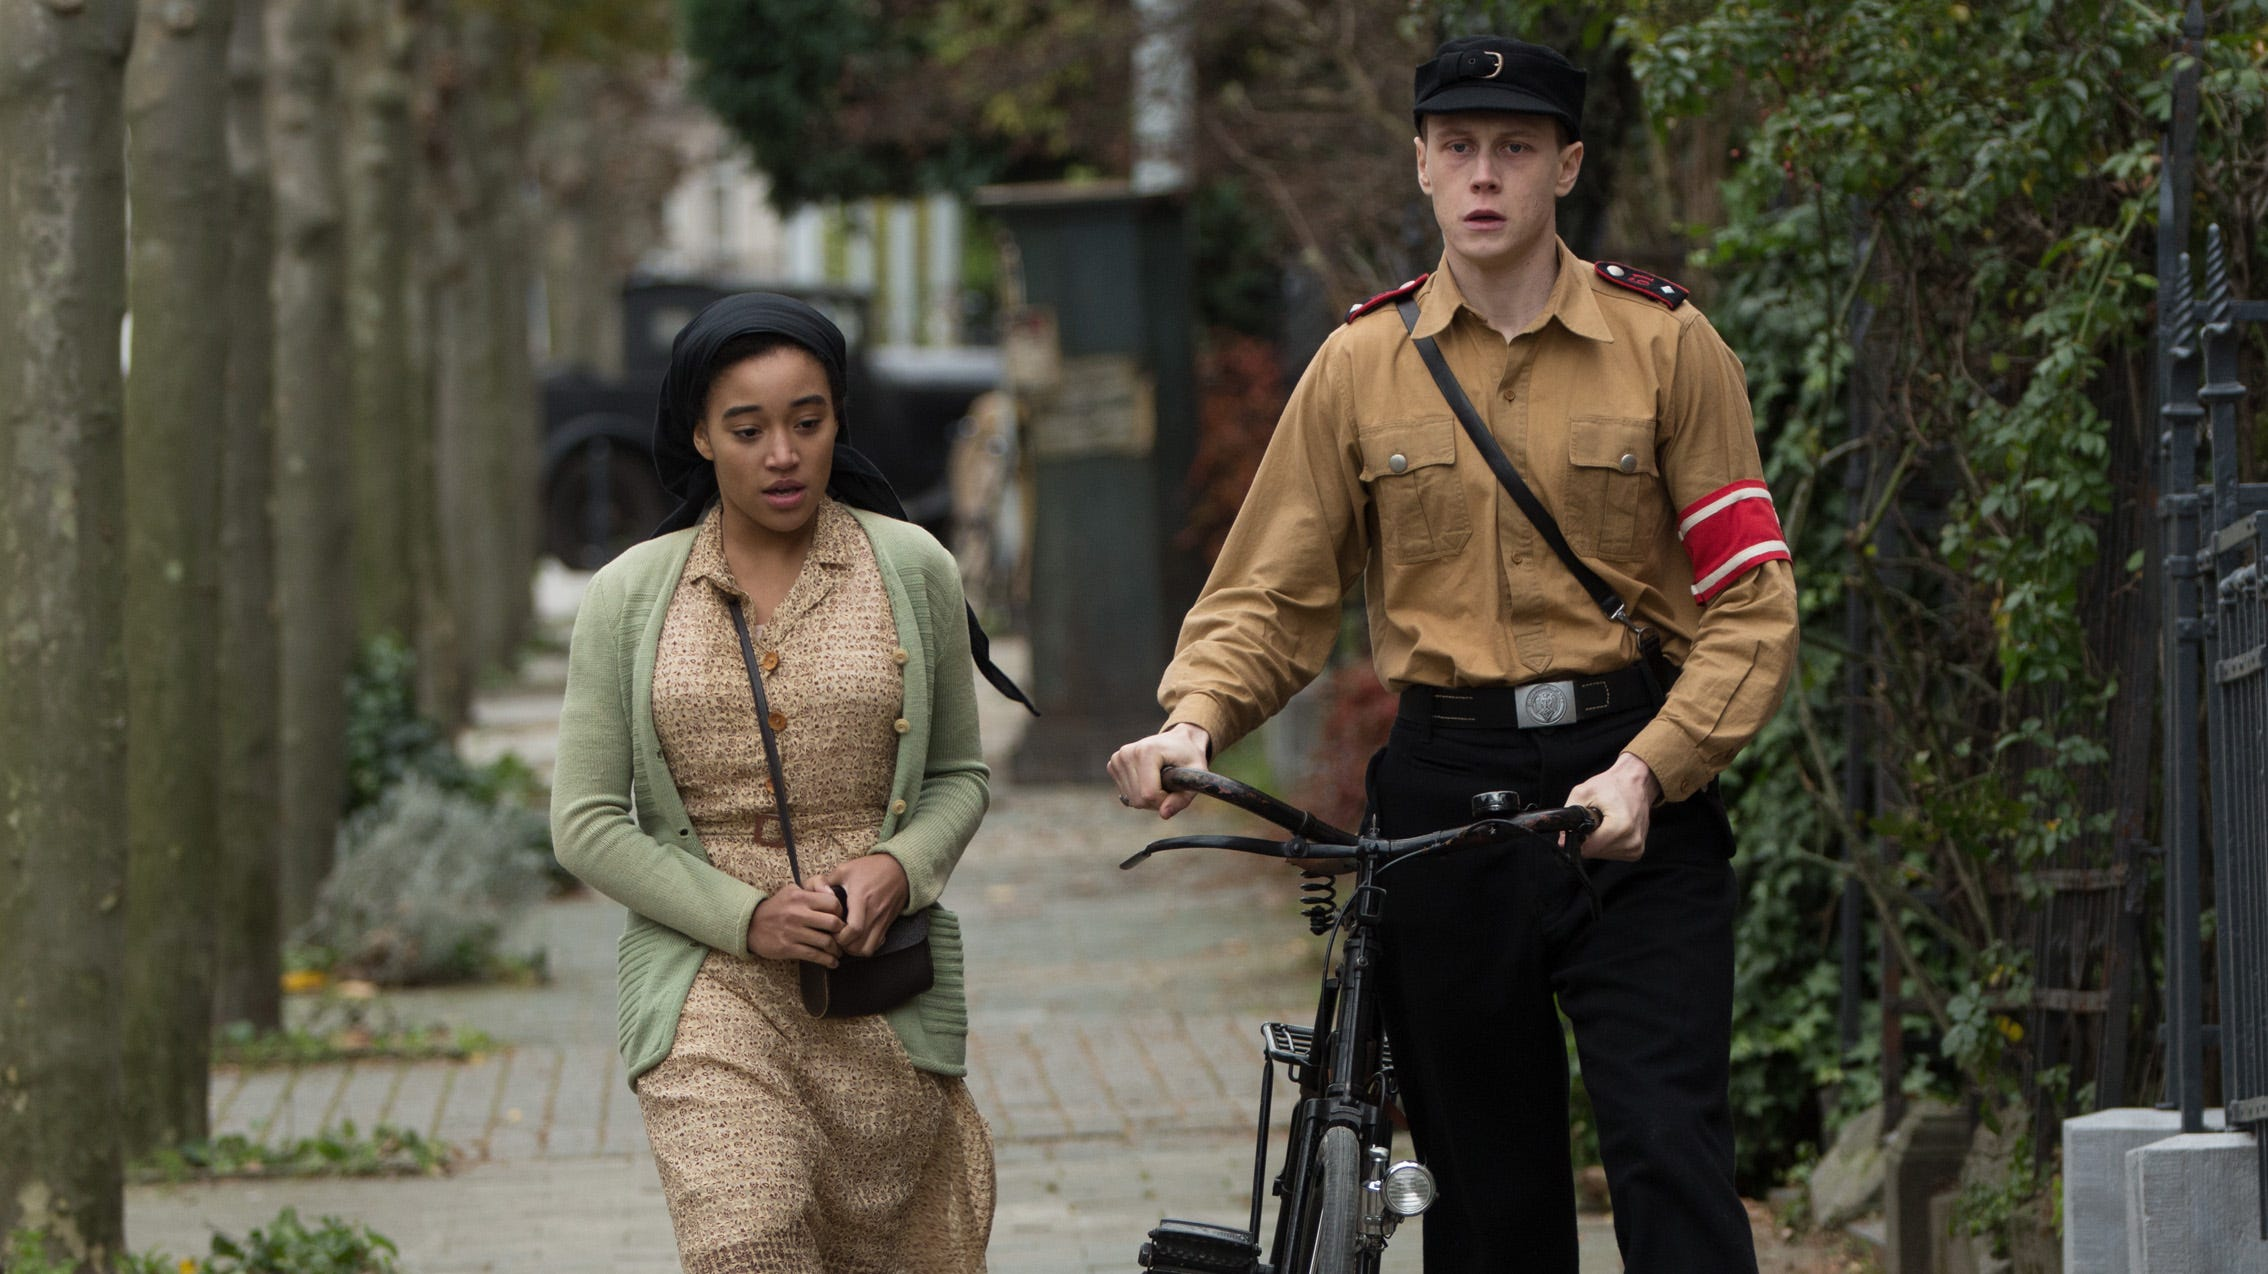 Amandla Stenberg's interracial Nazi Germany love story sparks outrage on Twitter